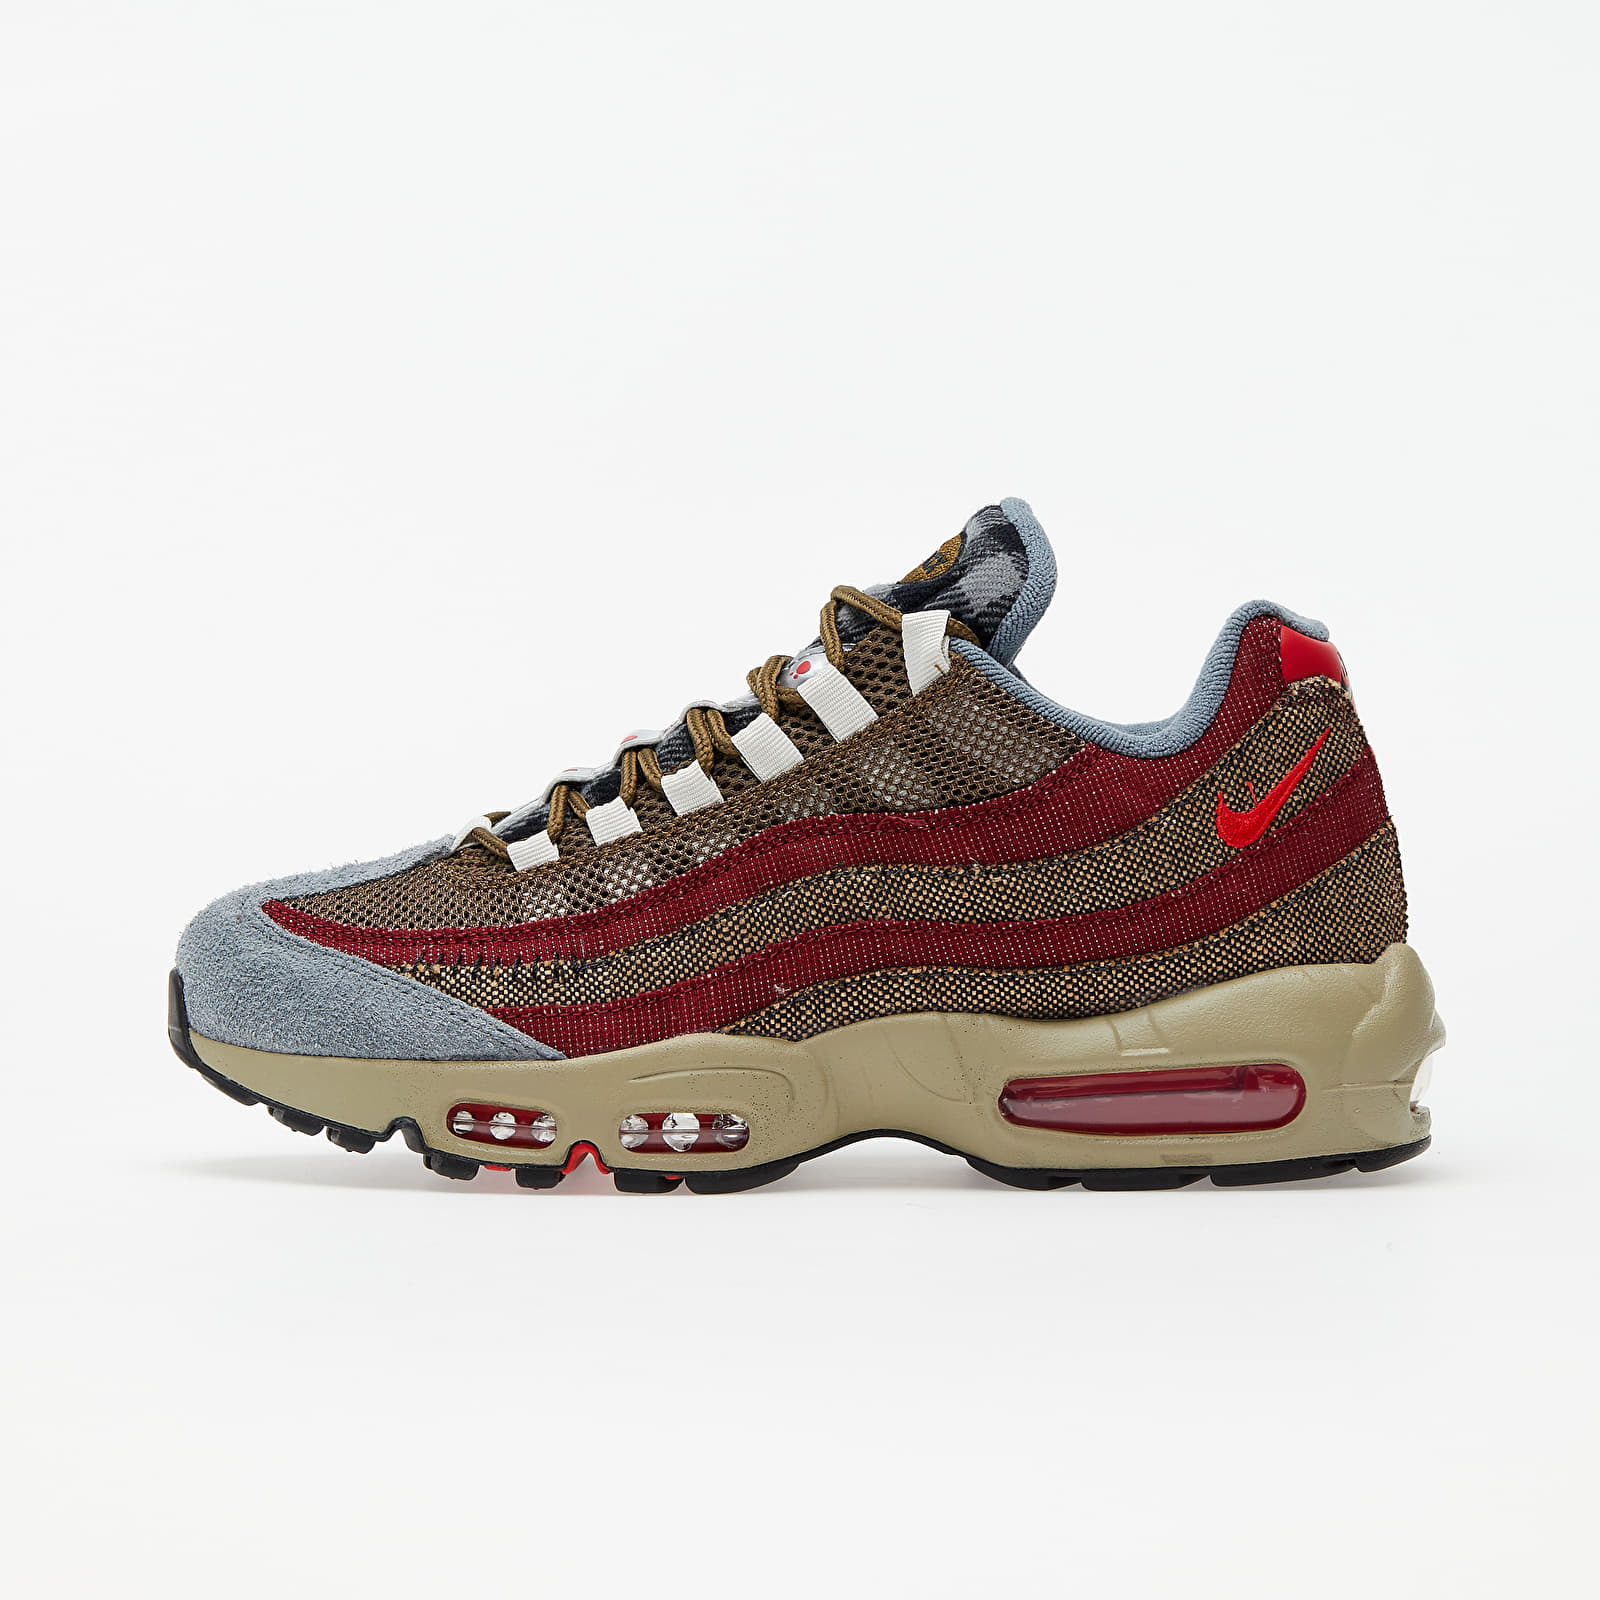 Nike Air Max 95 Velvet Brown/ University Red-Team Red EUR 41